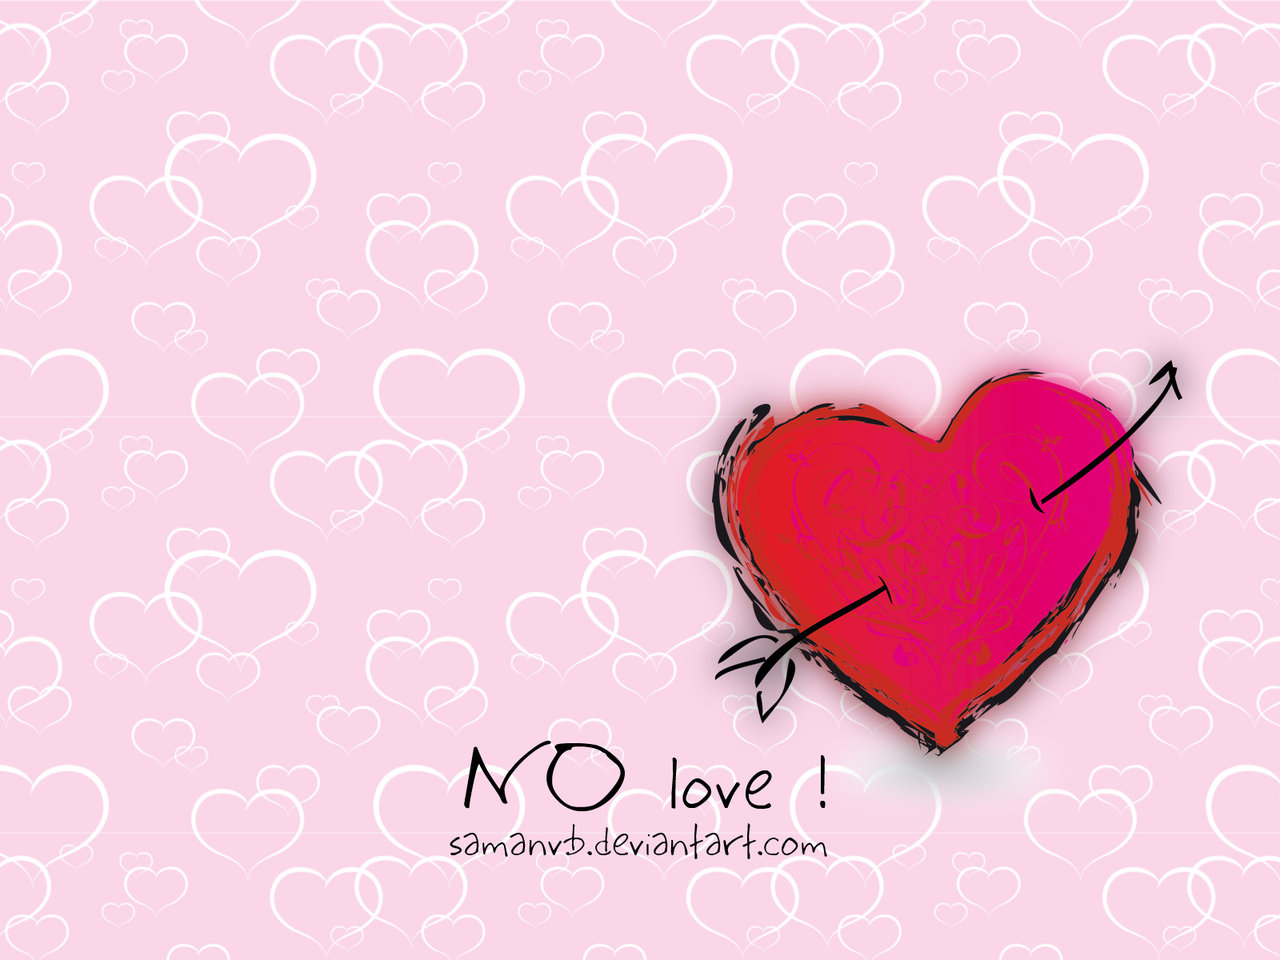 No Love Photos   Desktop Backgrounds 1280x960